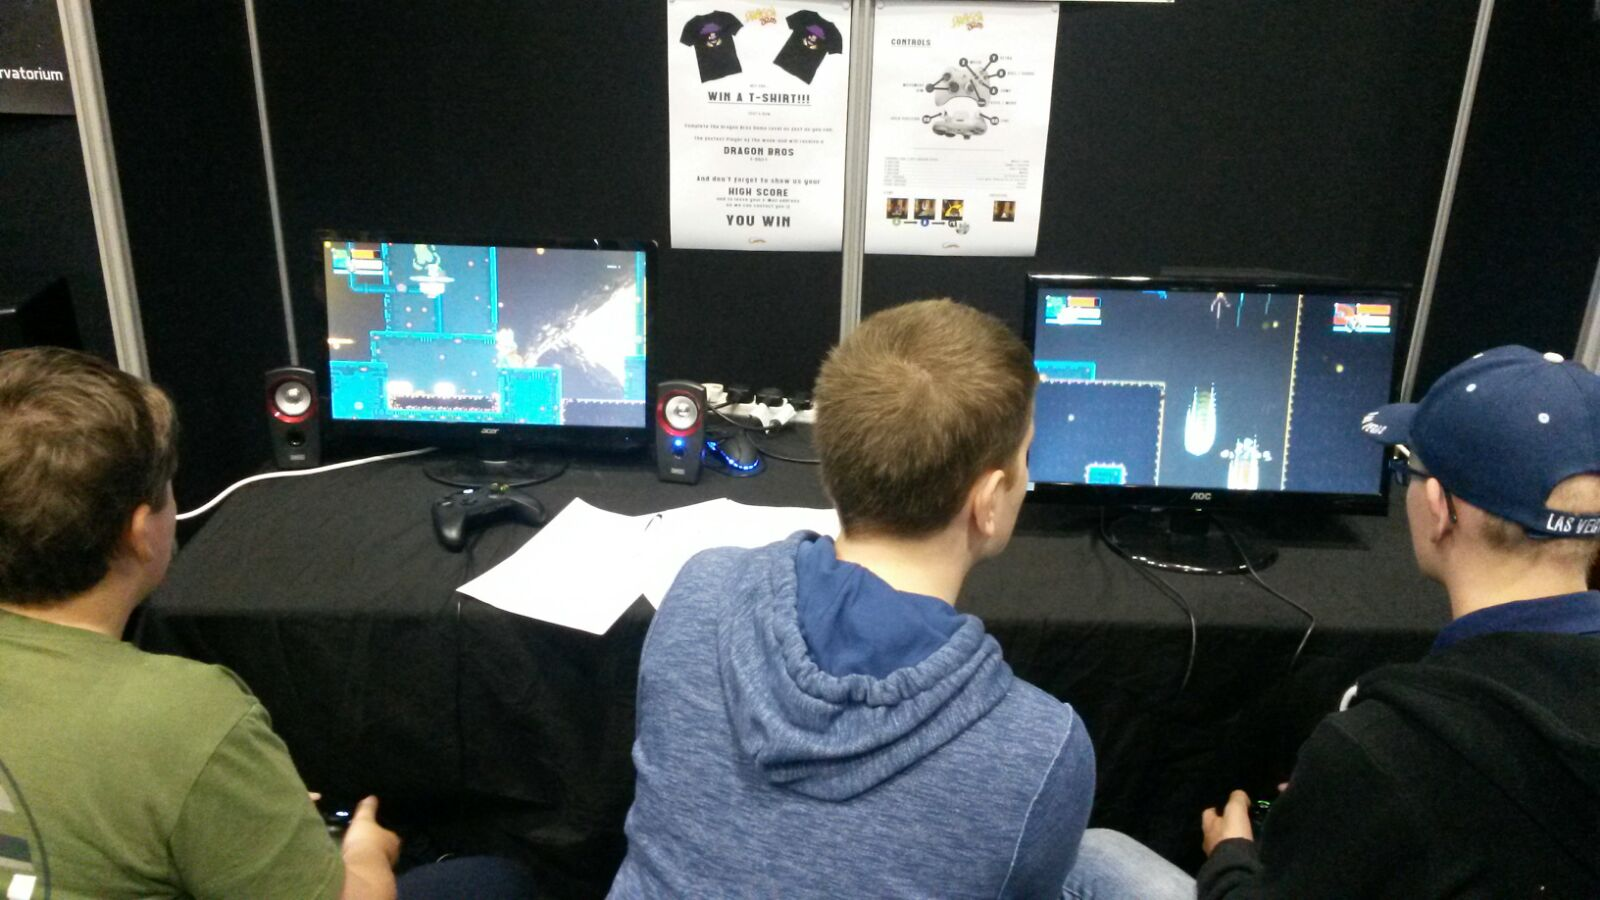 Some absorbed players